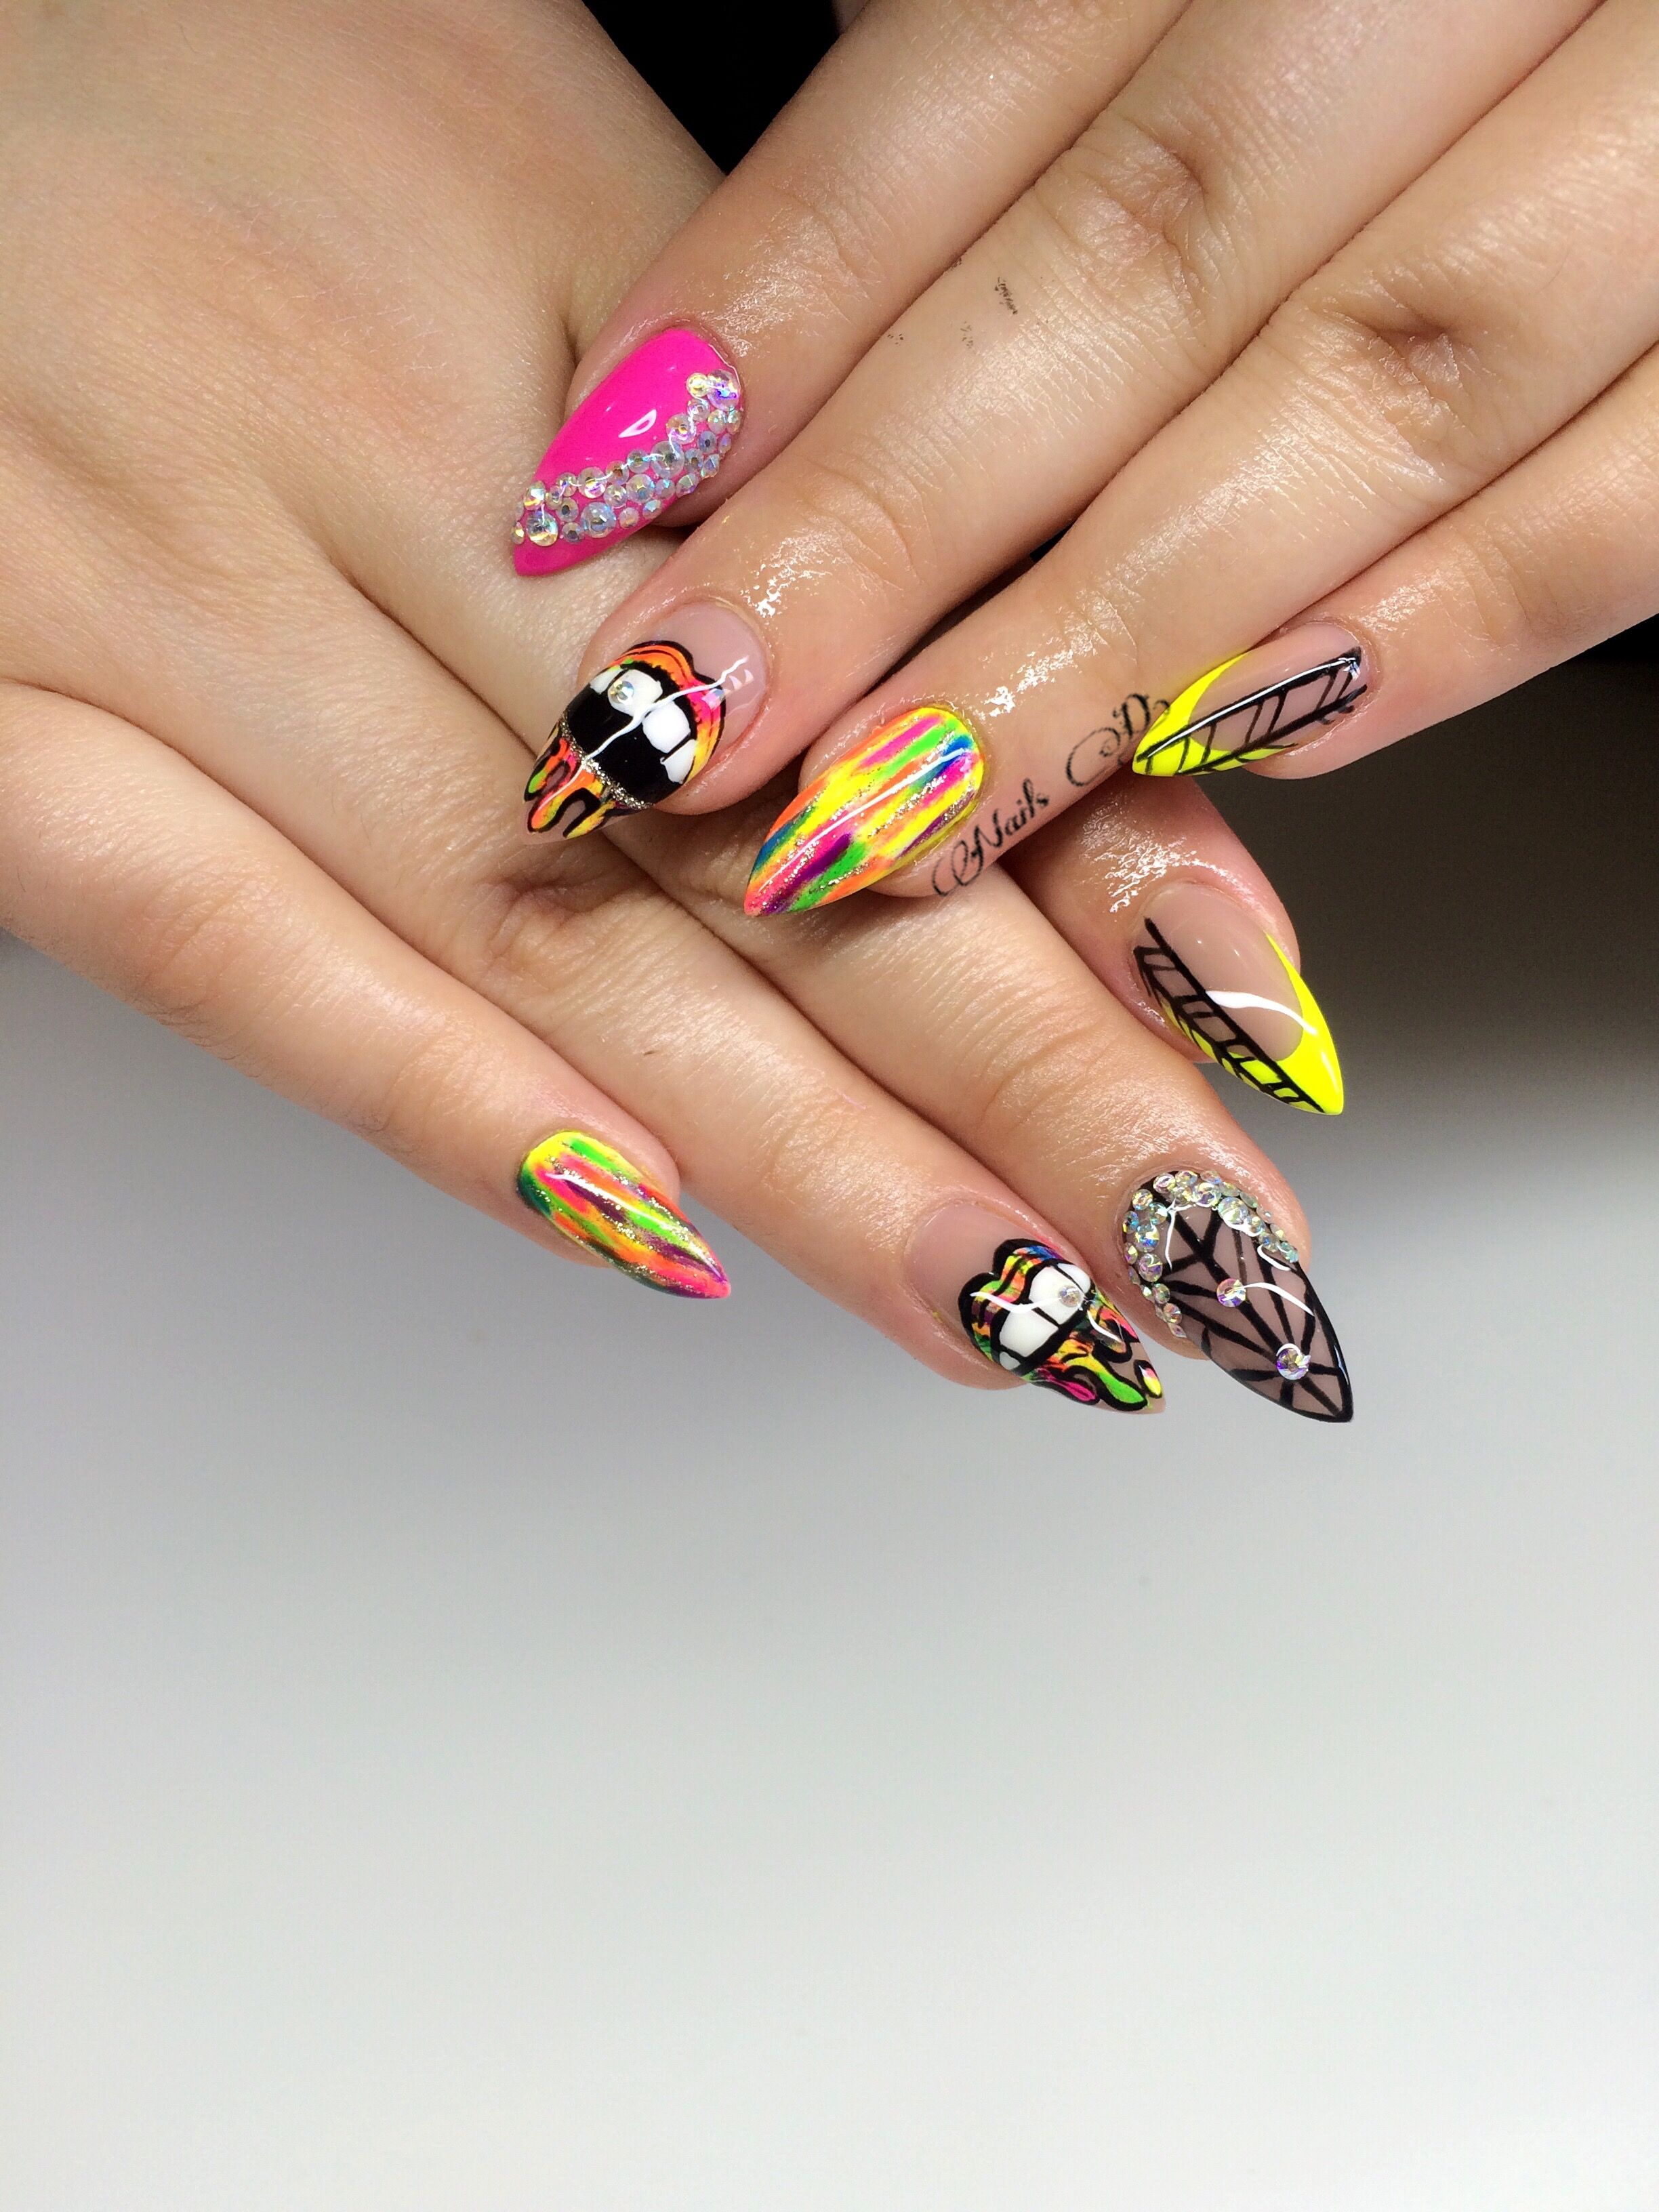 Nails design#crazy nails#crazy client#love her😍 | My Nails ...